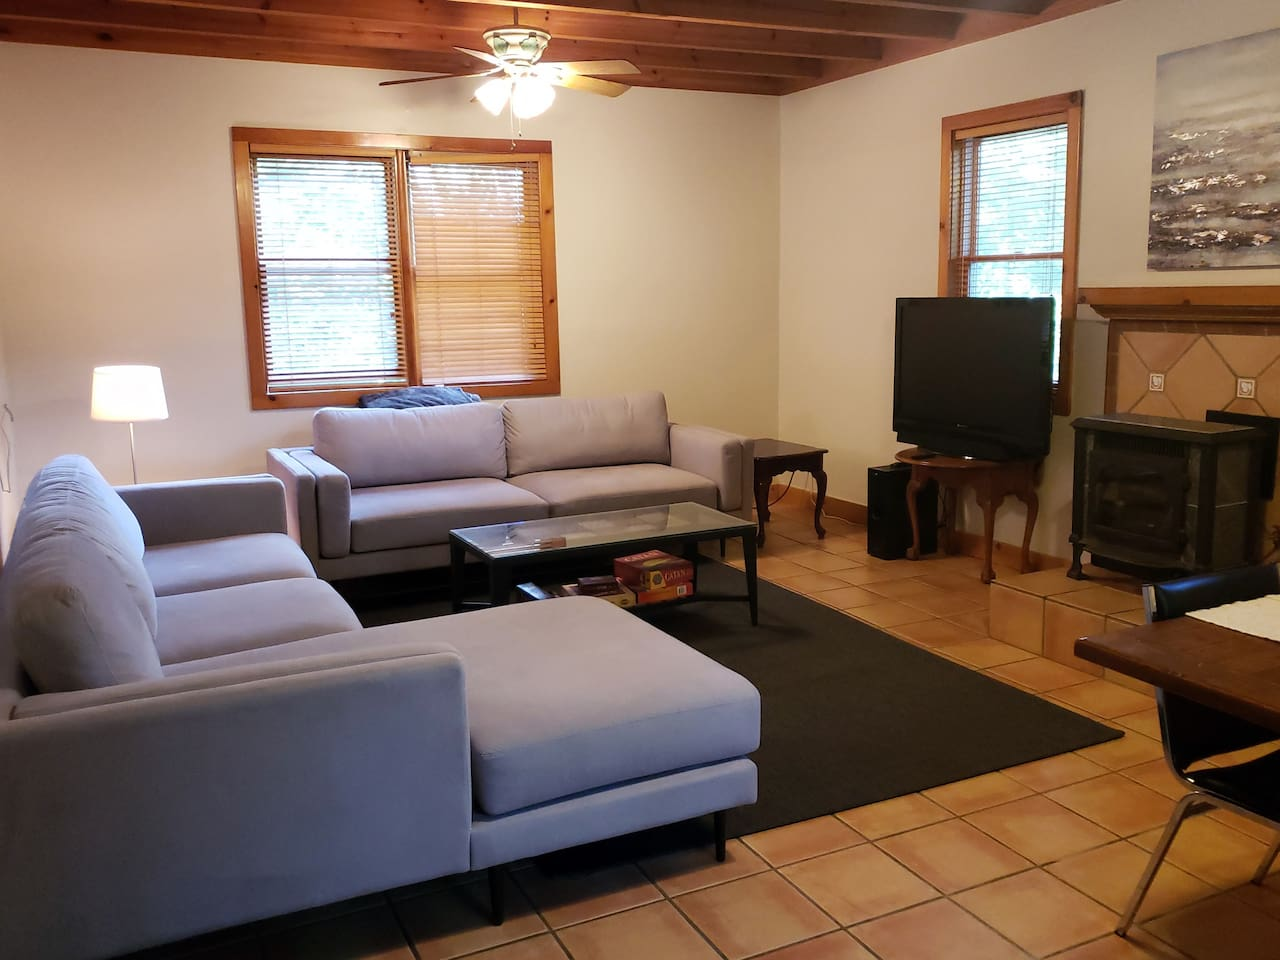 Shared Great Room with streaming services, games, and large dining table.